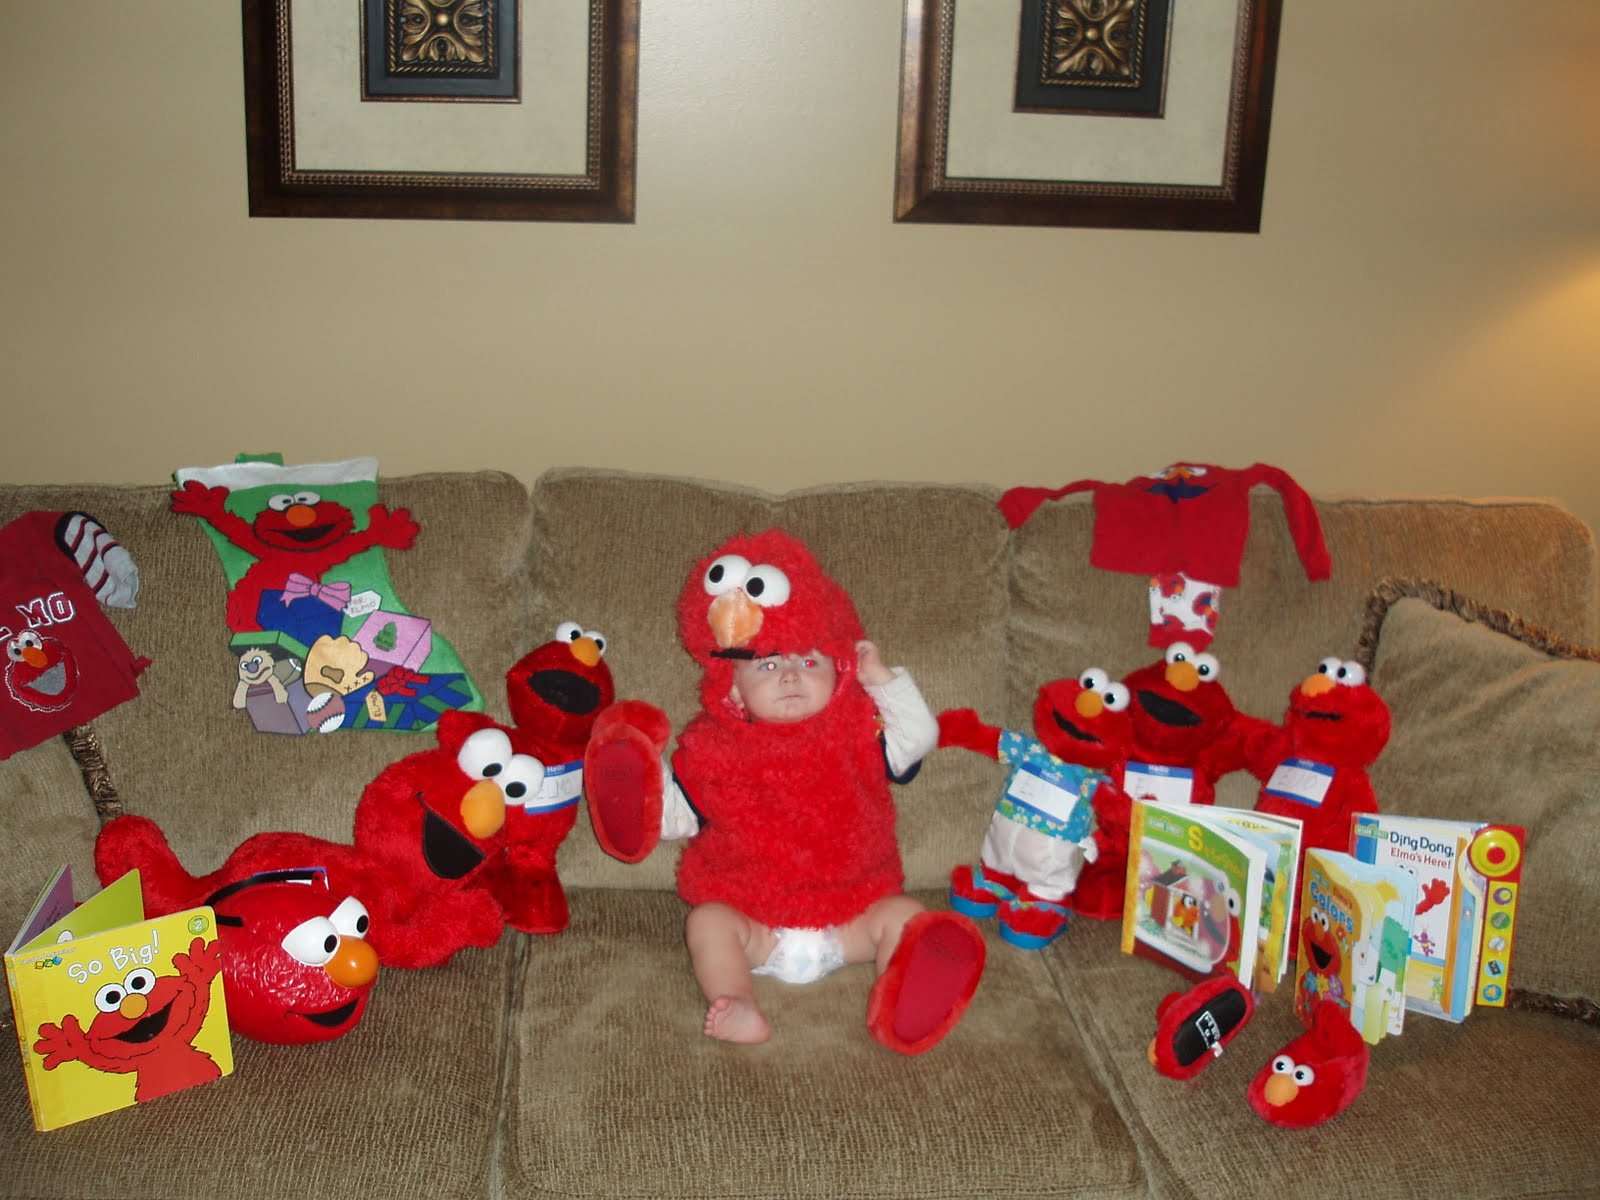 Morgans Mommmy Memoir November 2010 Cuddle Me Pajamas Elmo Look And Find He Enjoys Paying With The Above Dolls Wearing His Pajama Reading Books Watching Dvds Sporting Slipper Ans Shirt